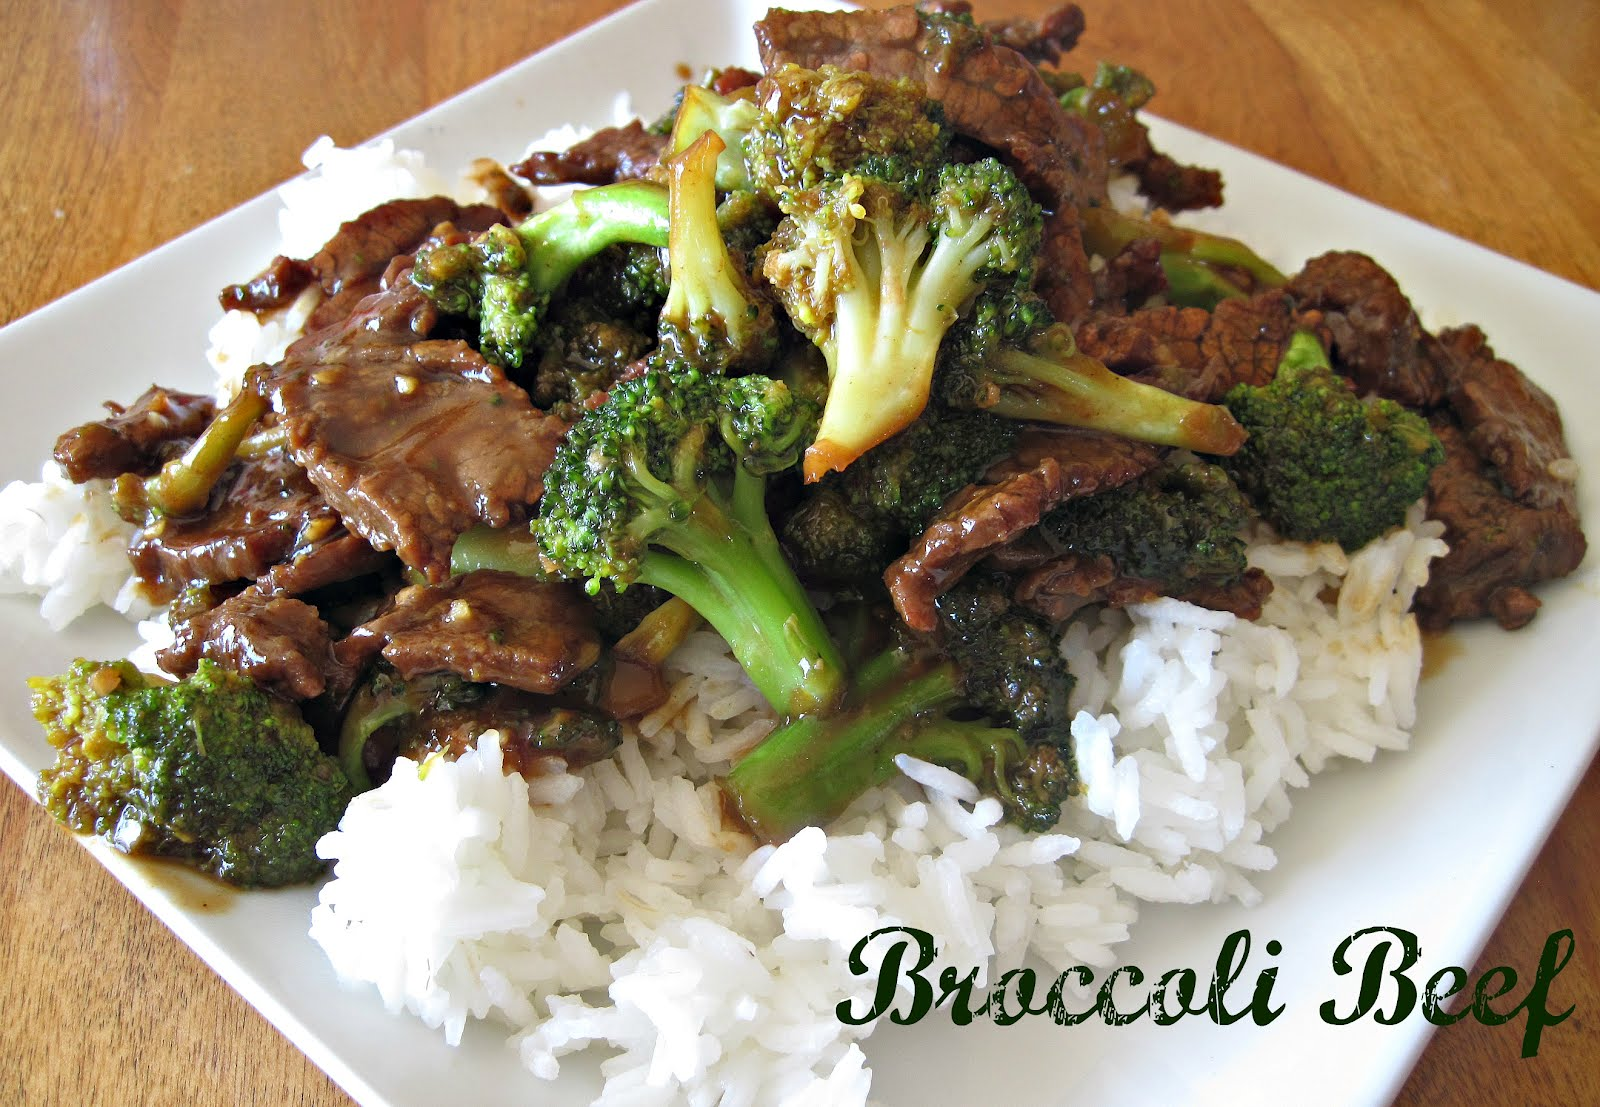 Aubrey's Recipes: The Best Broccoli Beef